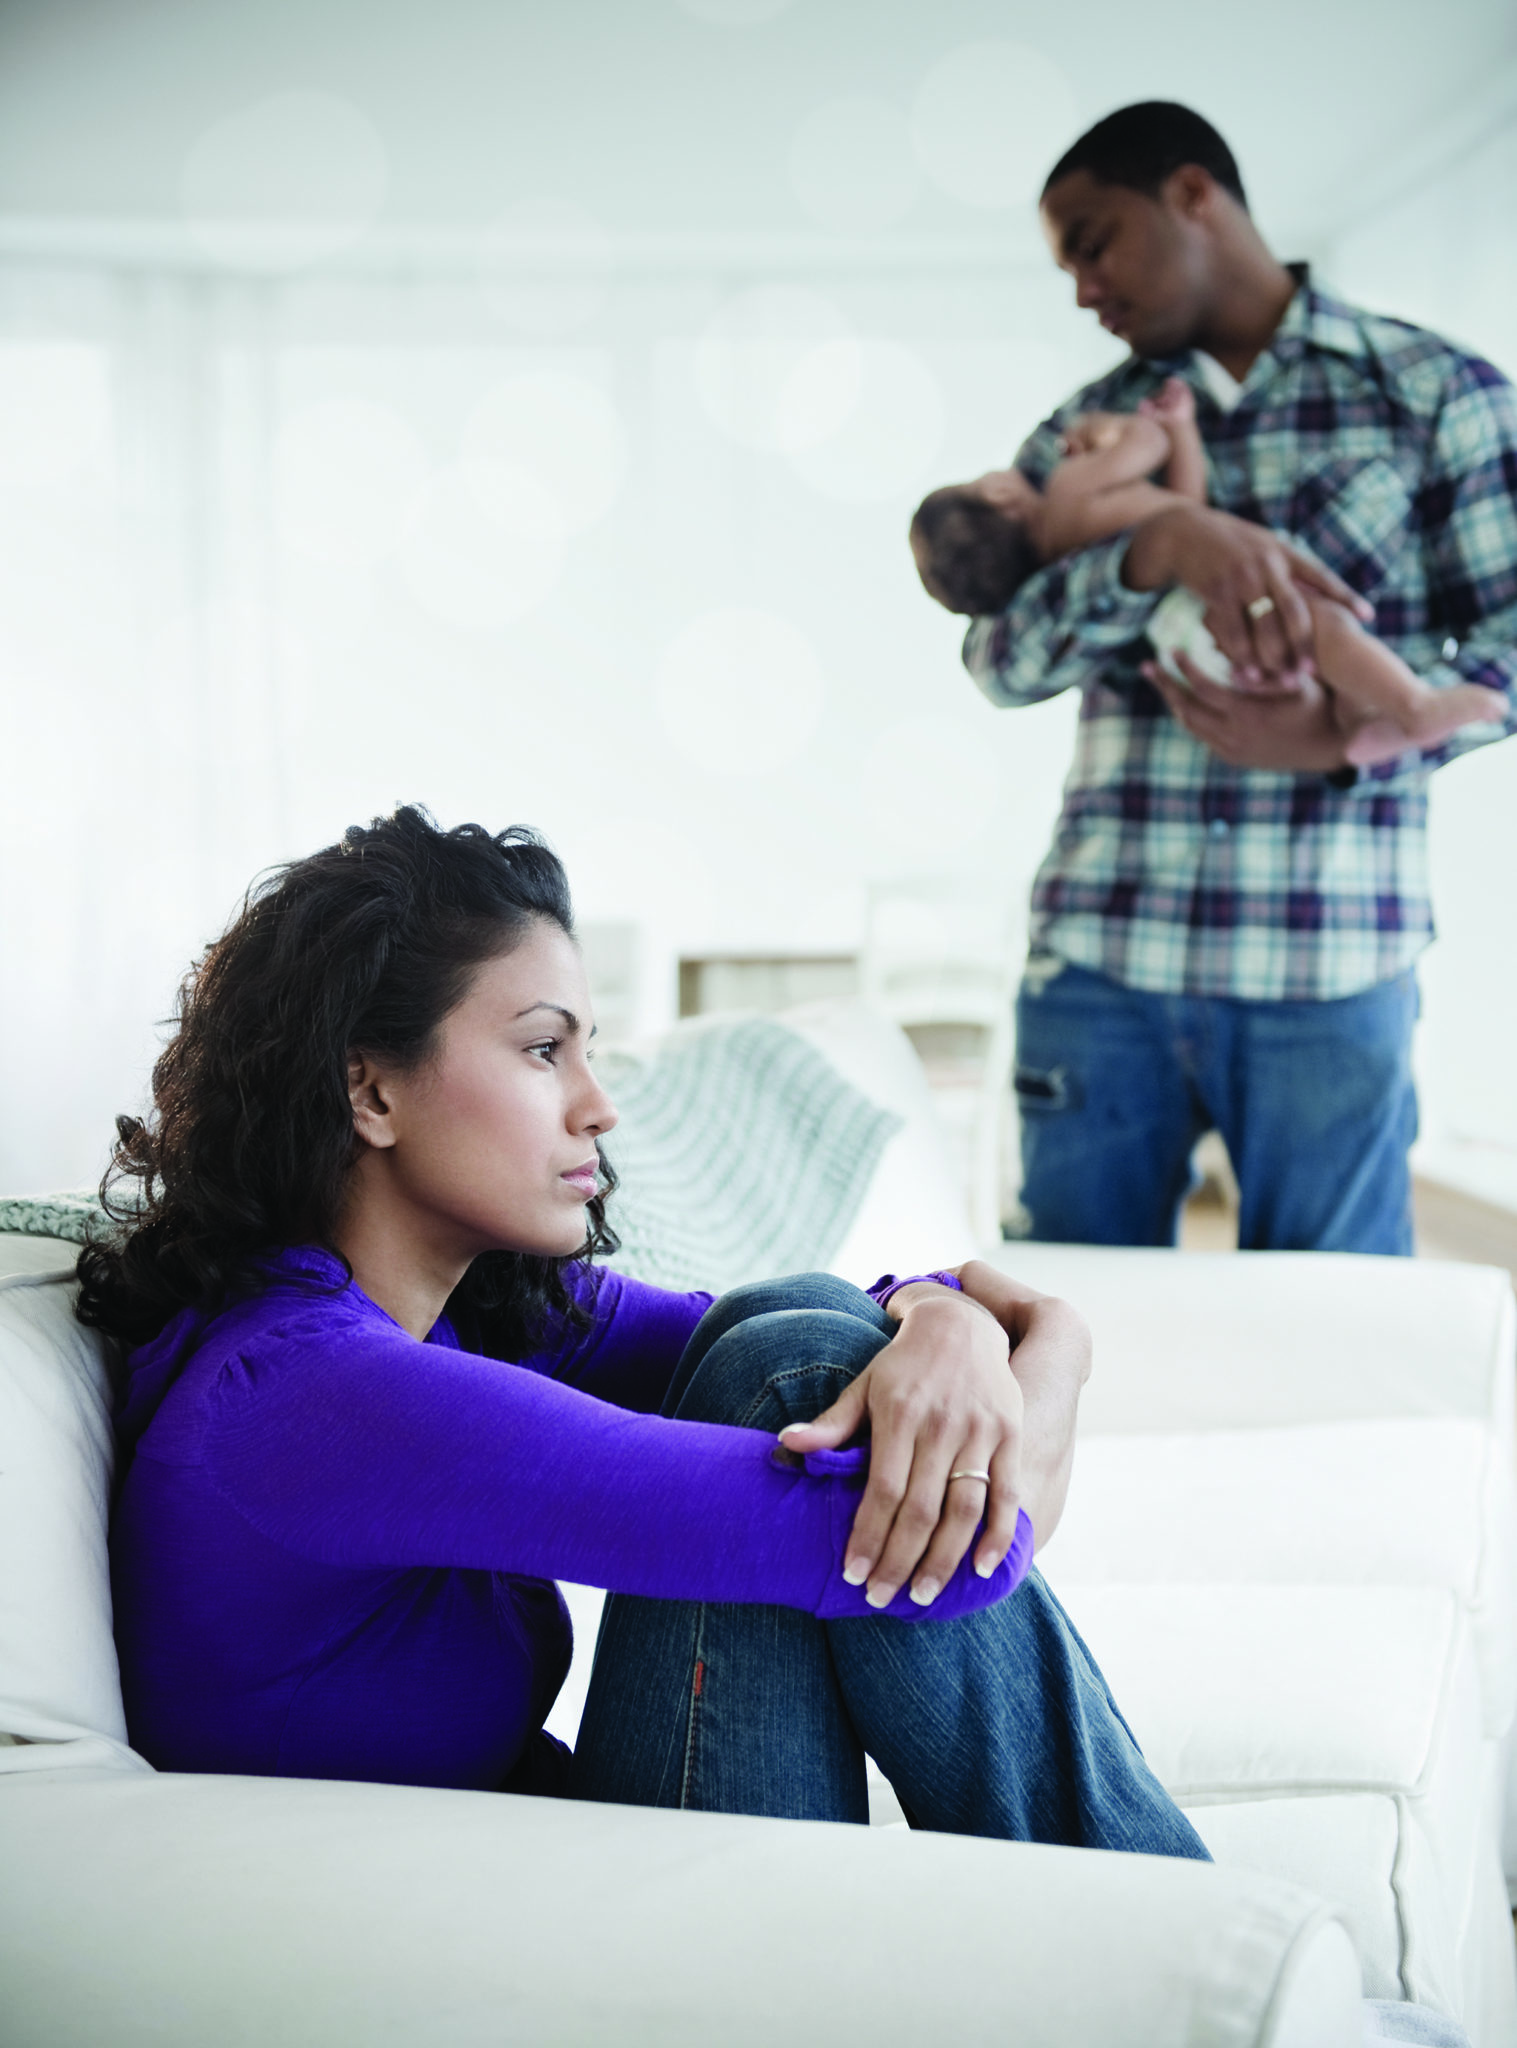 Do you think you have post partum depression?